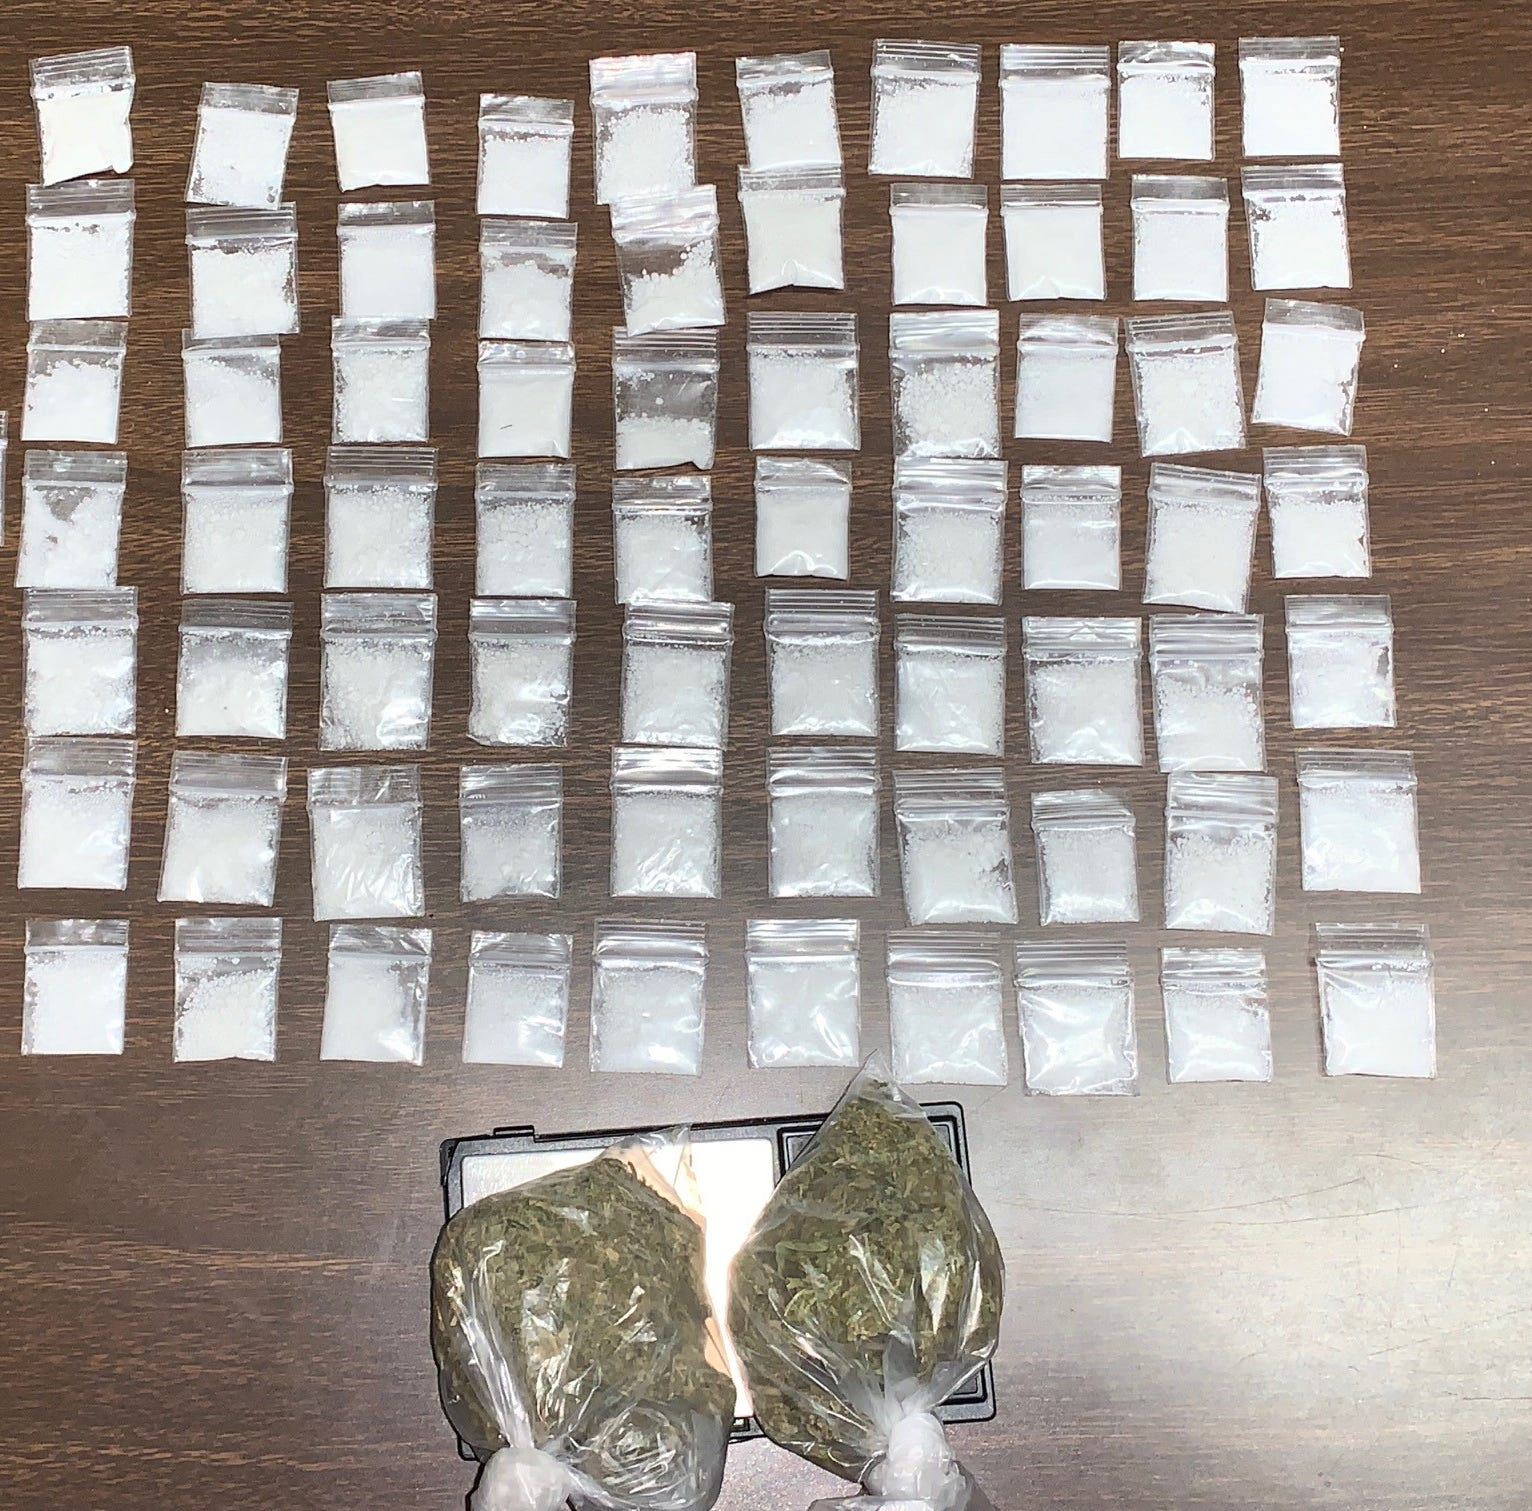 One arrested for drug possession following traffic stop